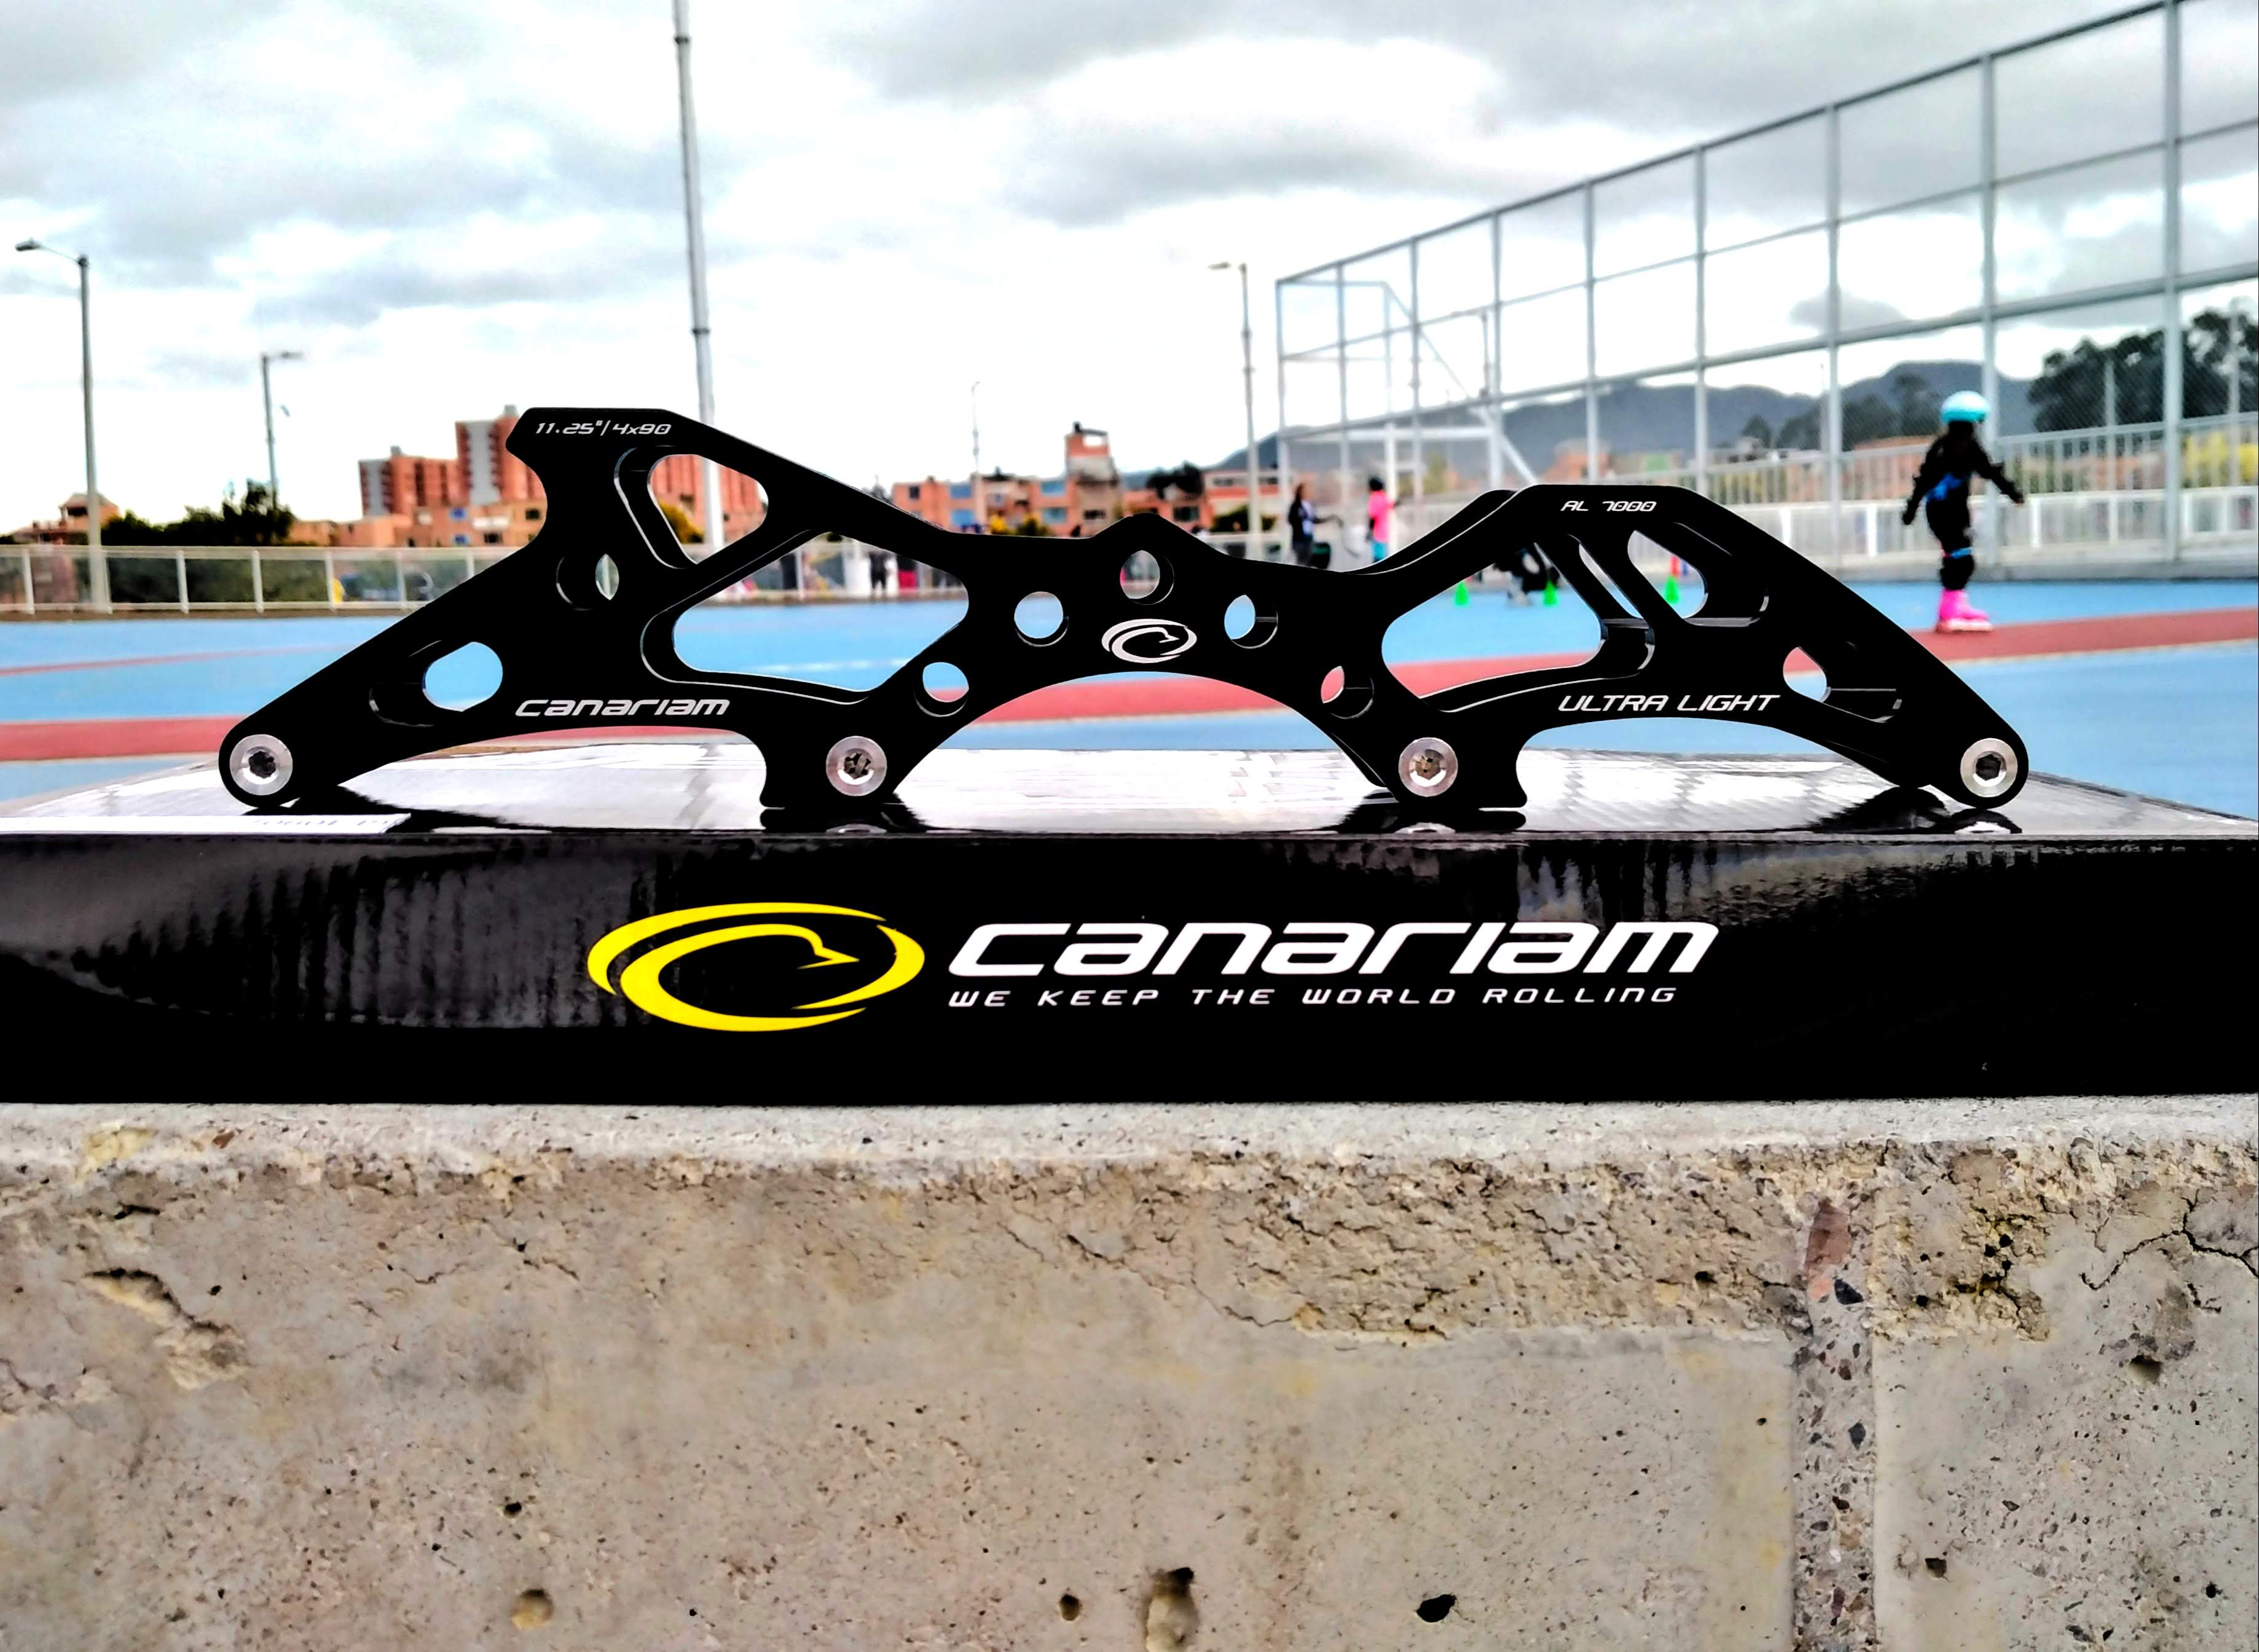 CHASIS CANARIAM ULTRA LIGHT